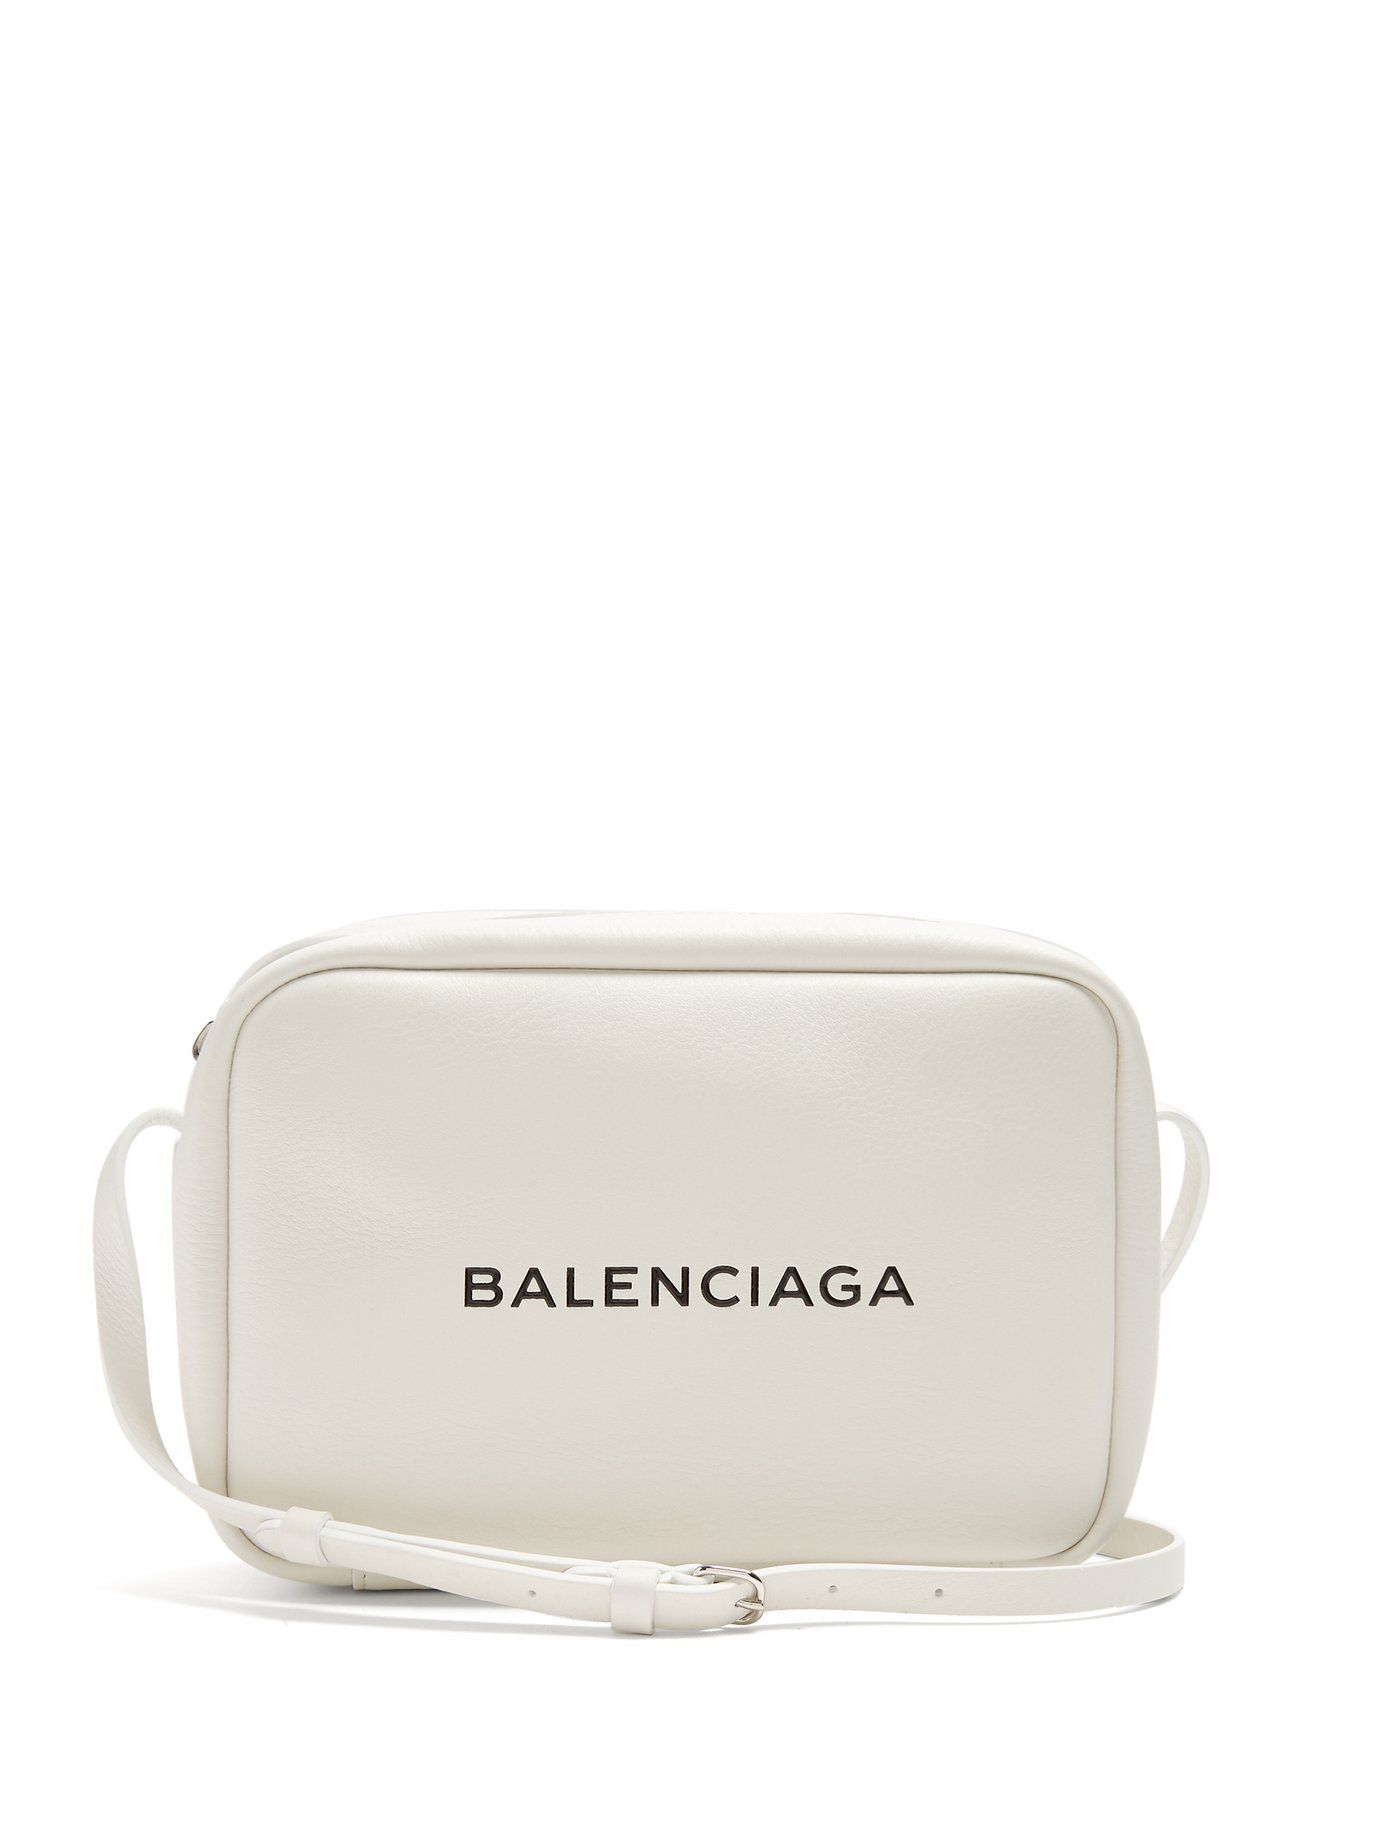 0b1db6856d9 Everyday cross-body bag | Balenciaga | MATCHESFASHION.COM Black Handbags,  Burberry Handbags